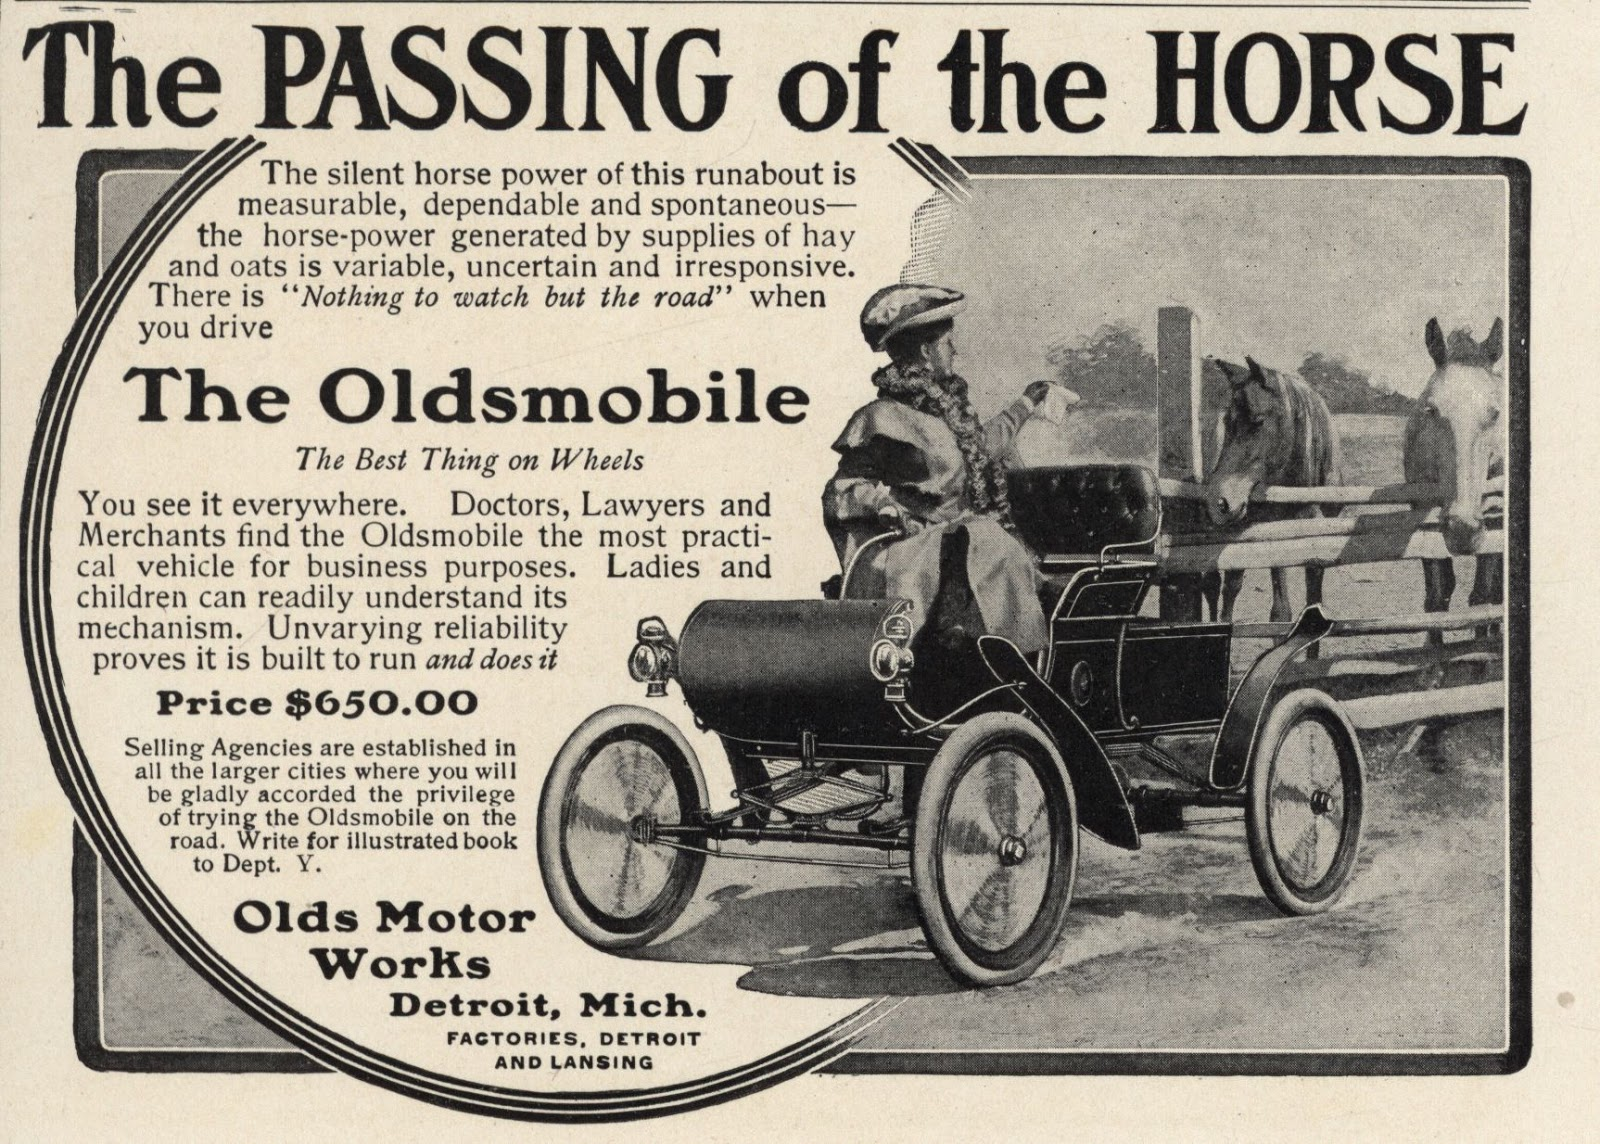 Another battle was between the new machine and the old-fashioned horse,  portrayed by some of the early carmakers as temperamental, unreliable, ...